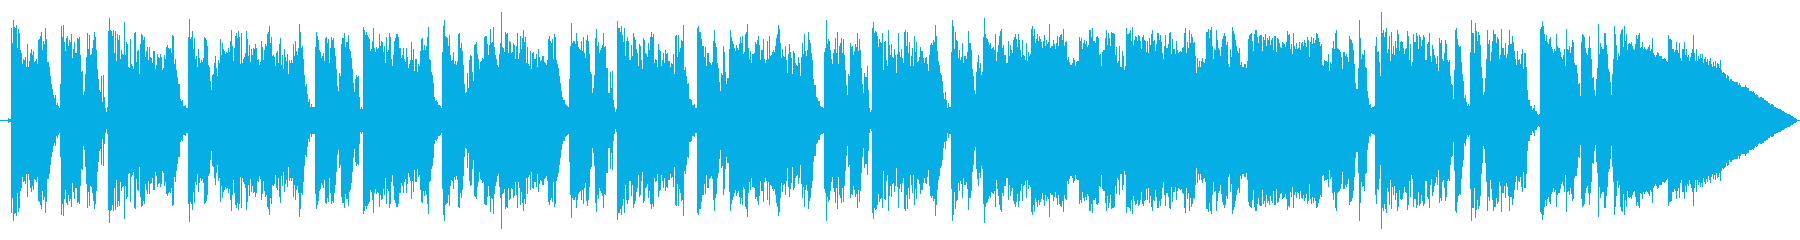 Funky time's reproduced waveform